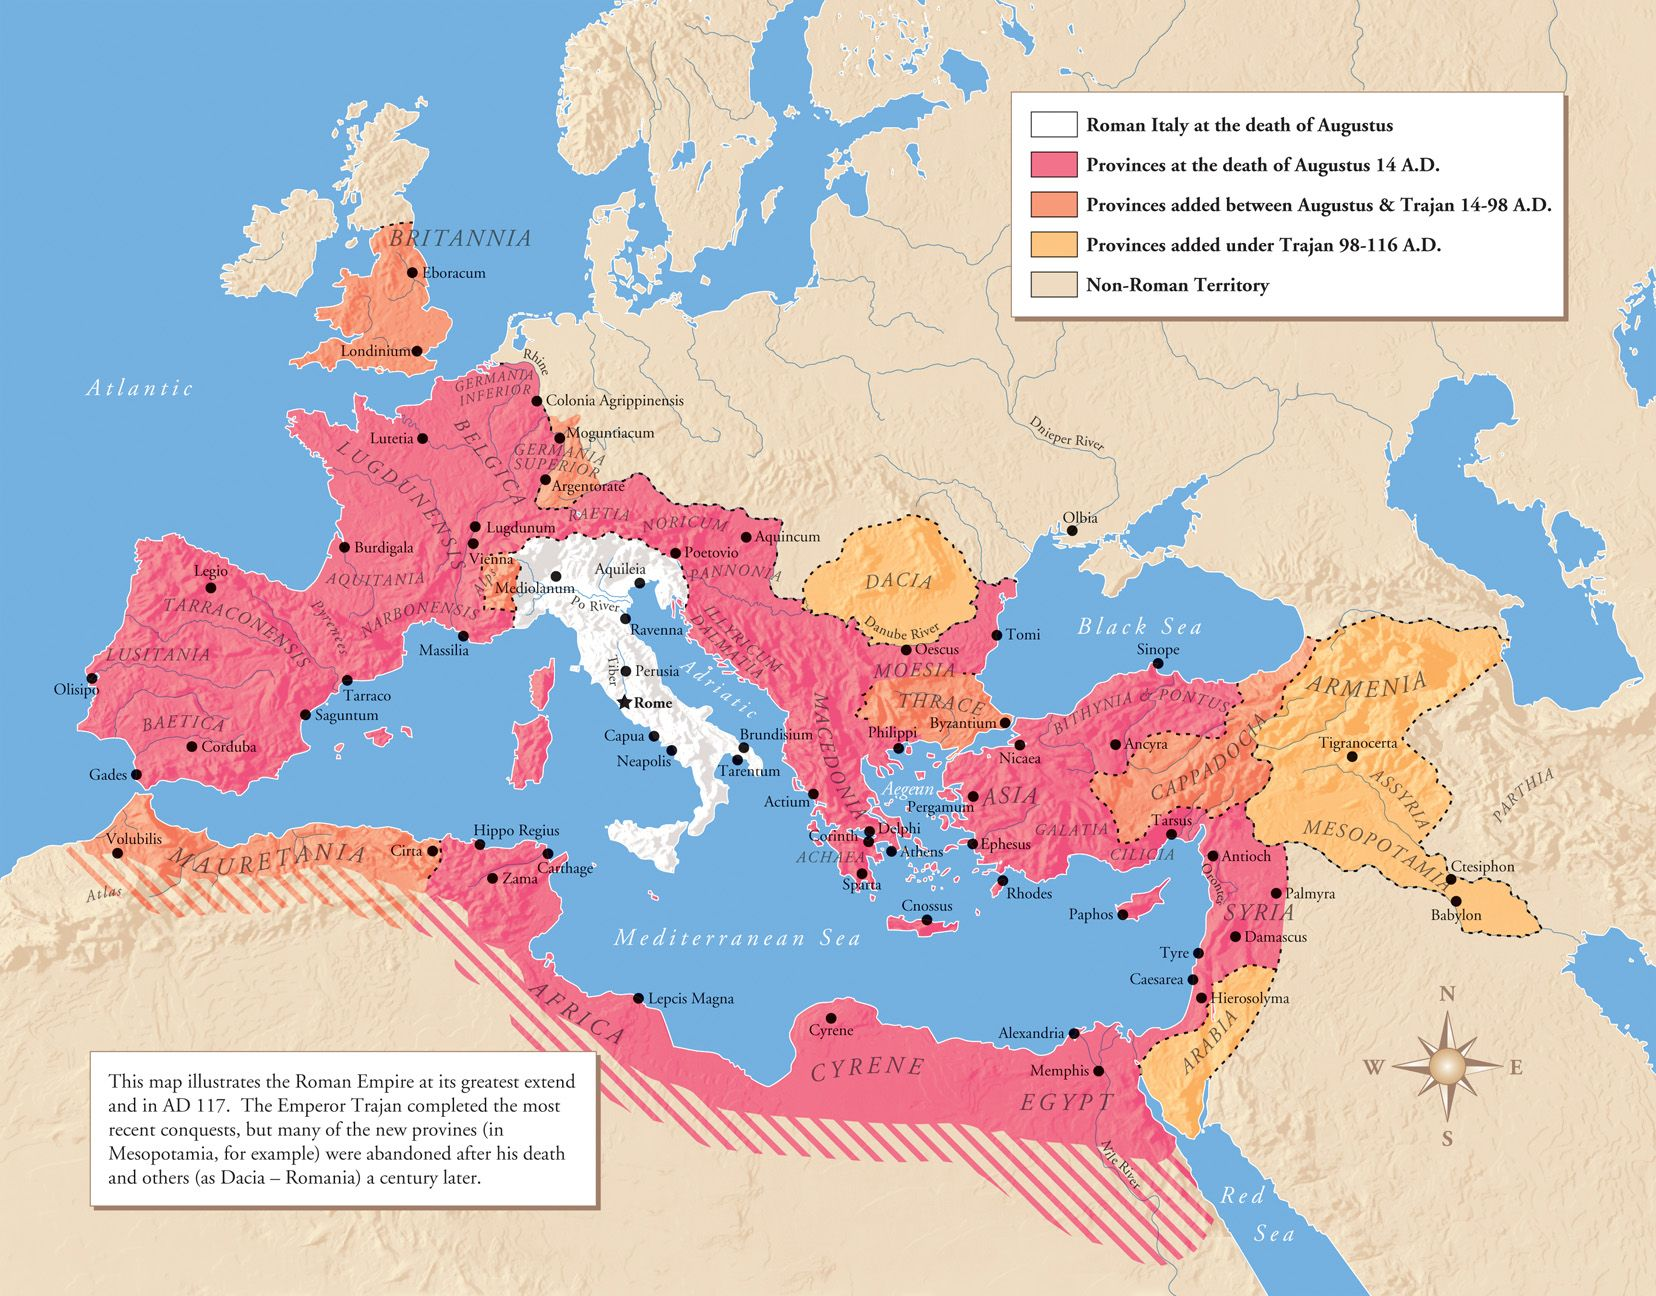 height of roman empire map Roman Empire Map At Its Height Over Time Roman Empire Map Ancient Rome Map Roman Empire height of roman empire map